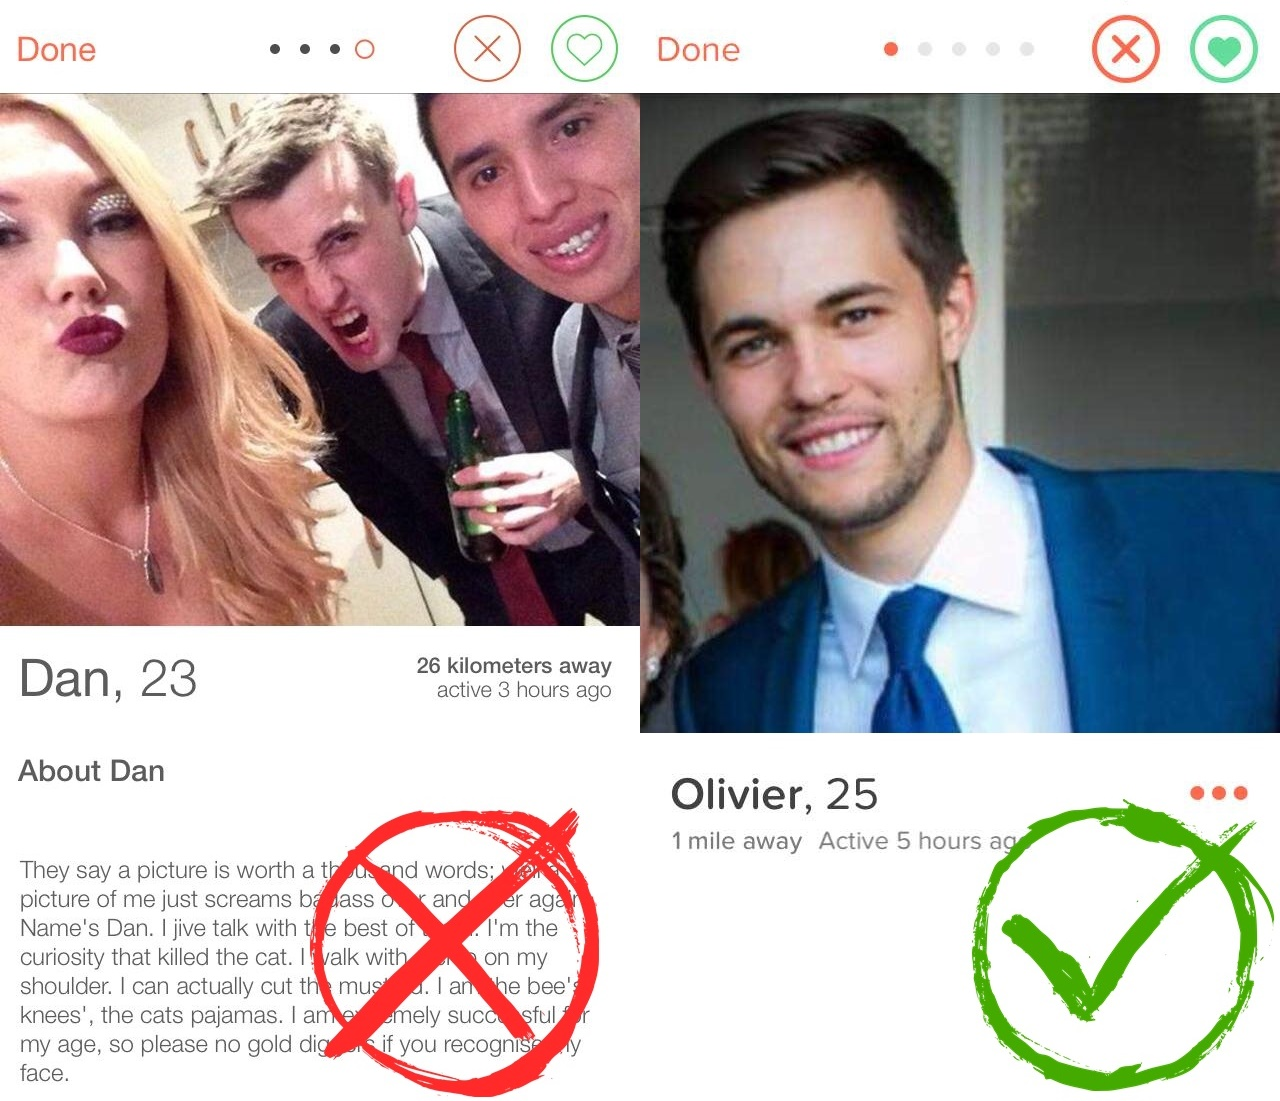 do&don't on tinder